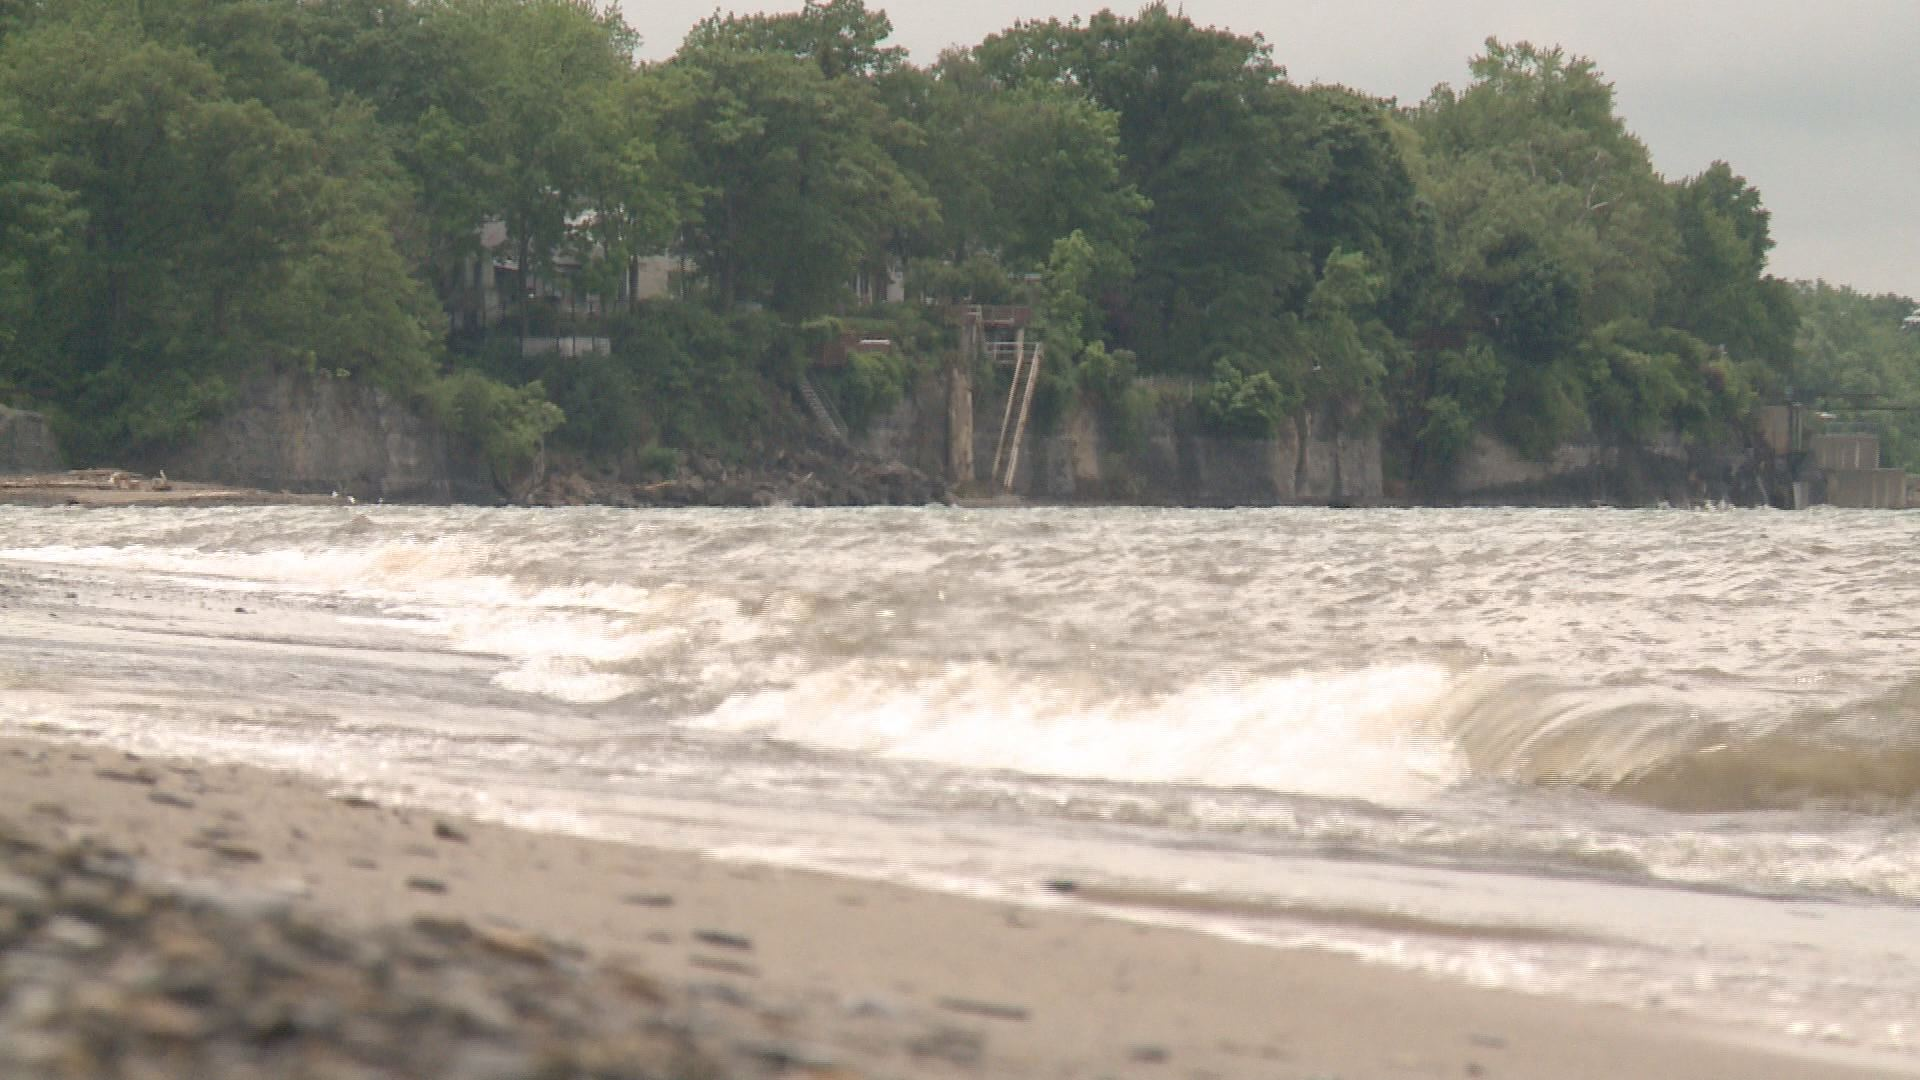 lake erie levels hit two